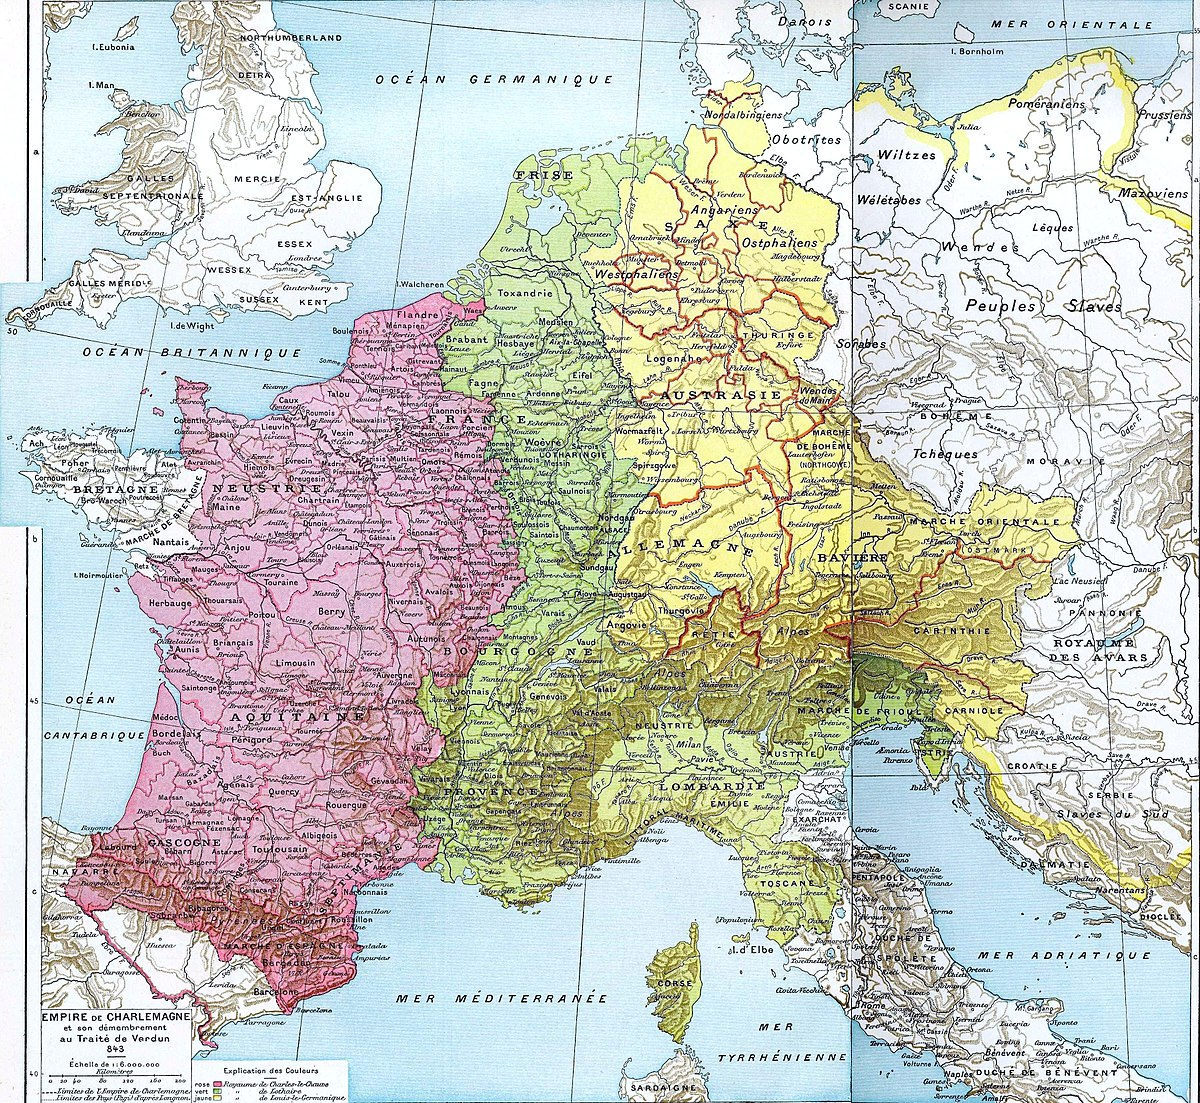 Proclamation of Charlemagne as emperor. The emergence and disintegration of the empire of Charlemagne